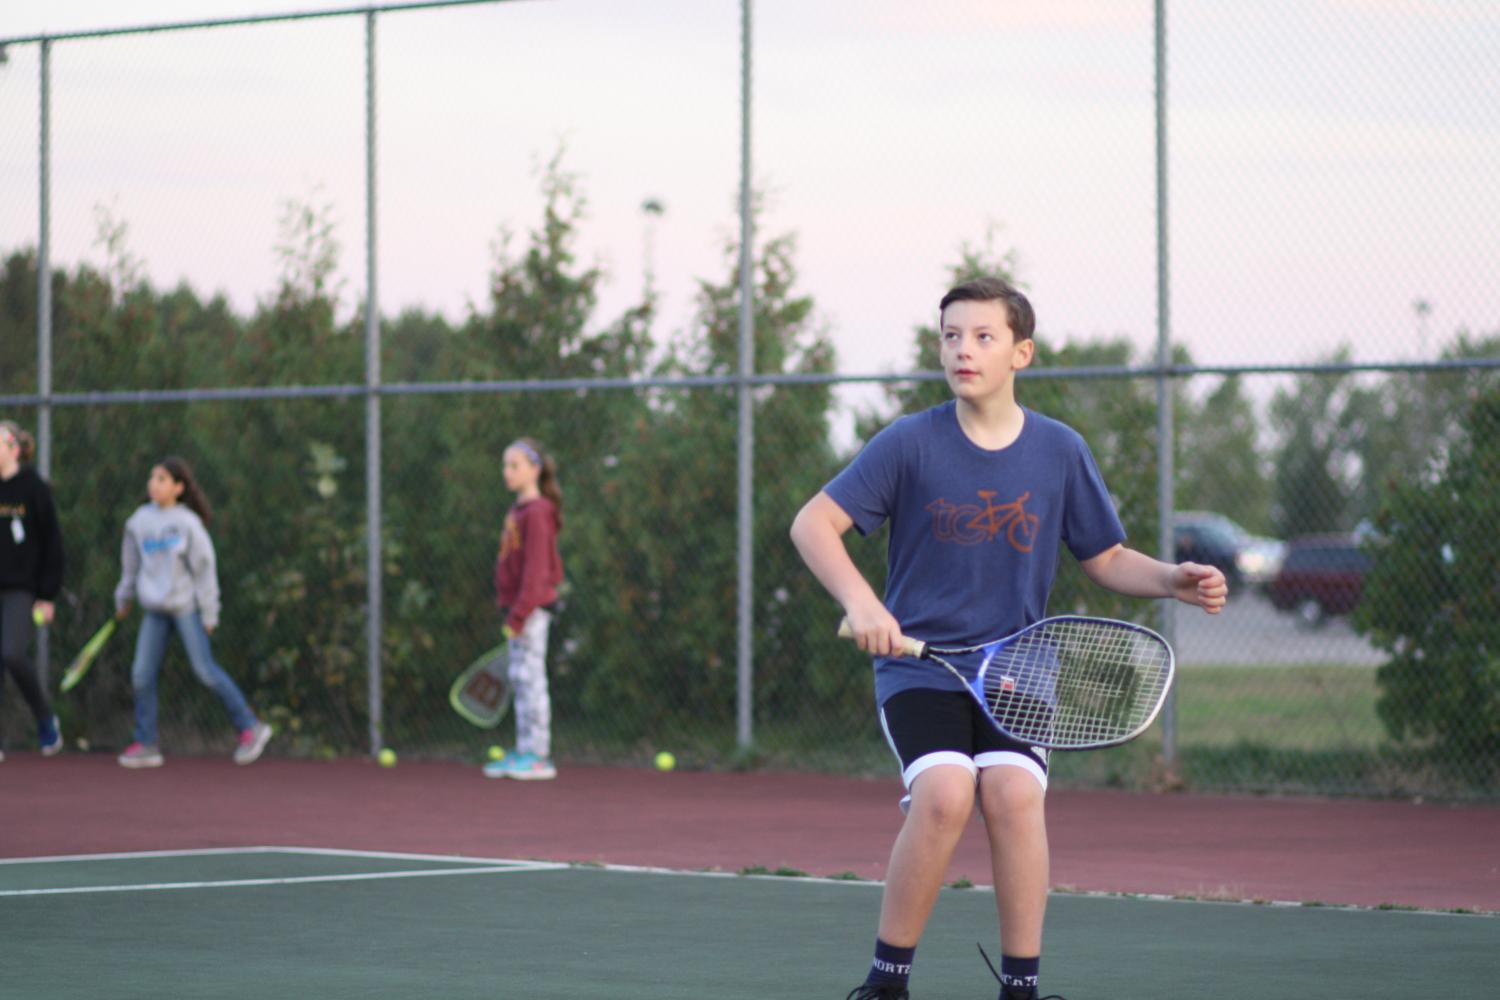 William+Unger+playing+tennis+in+gym.